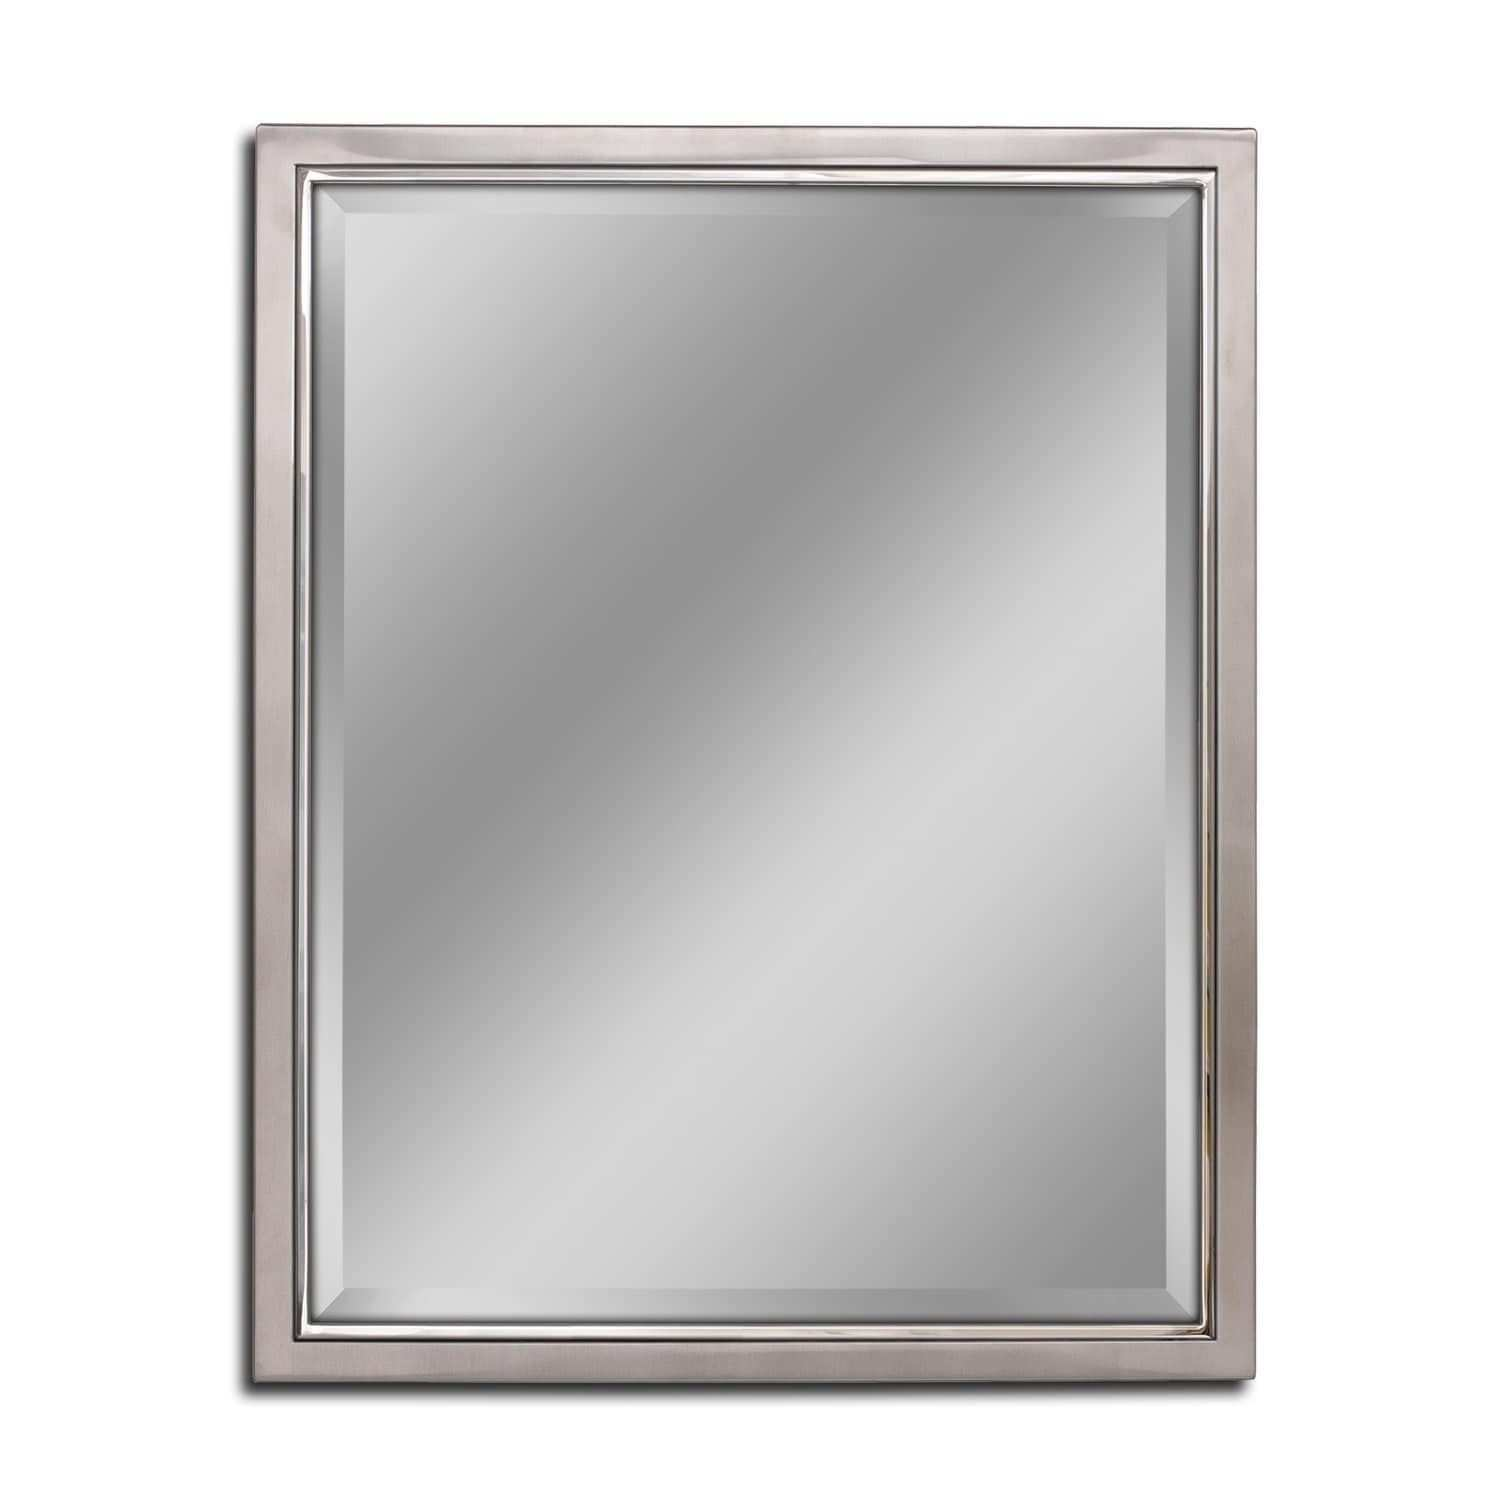 Headwest Classic Brush Nickel Chrome Wall Mirror Silver